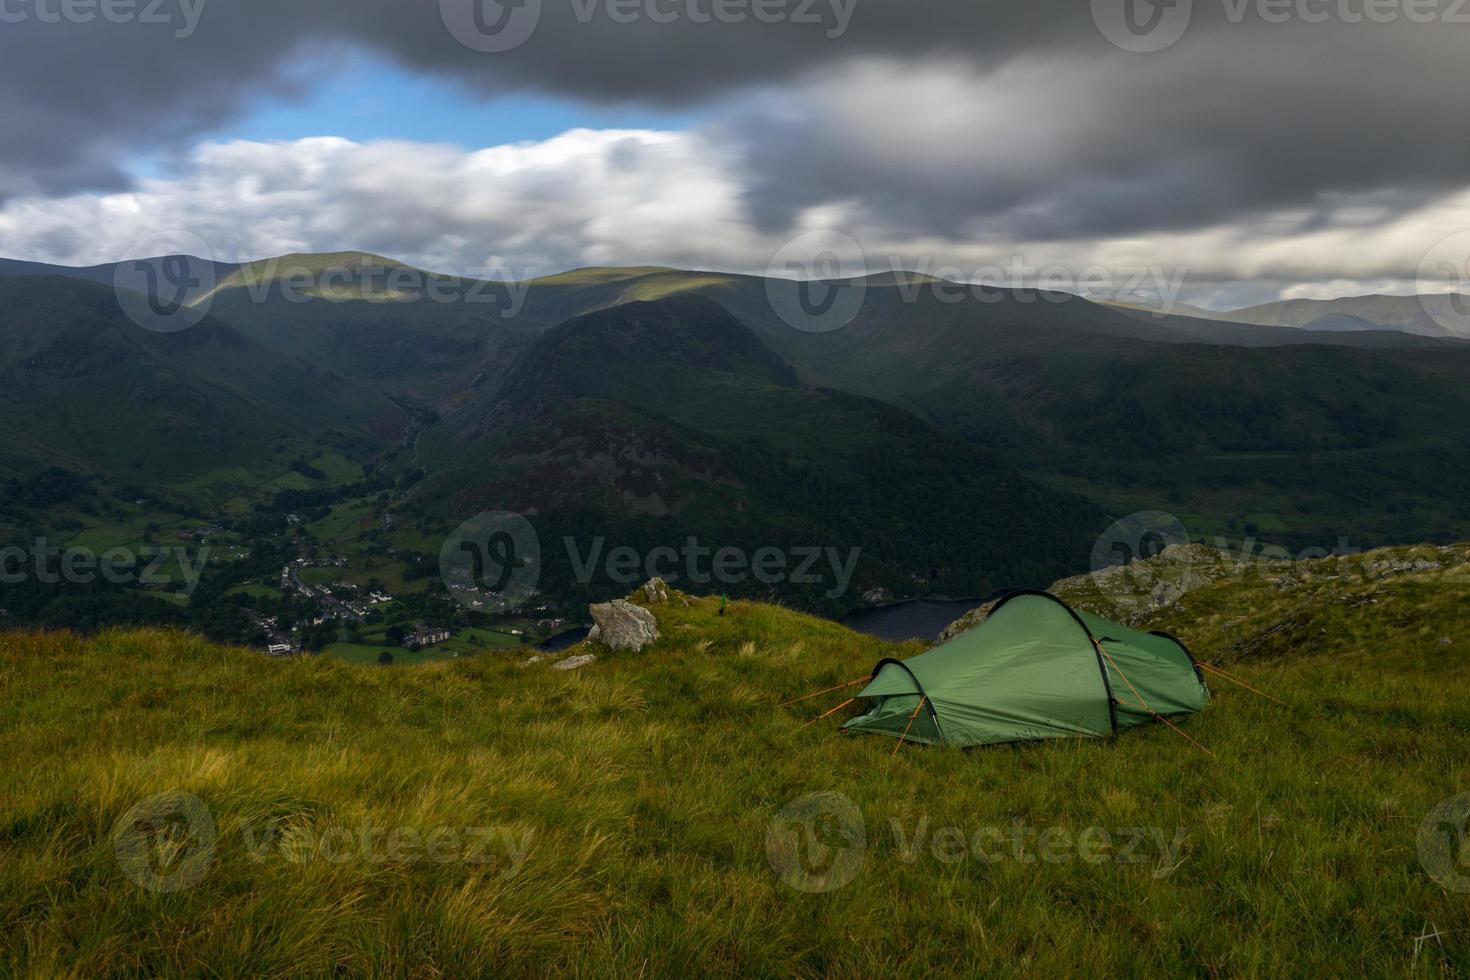 Camping in the wild photo